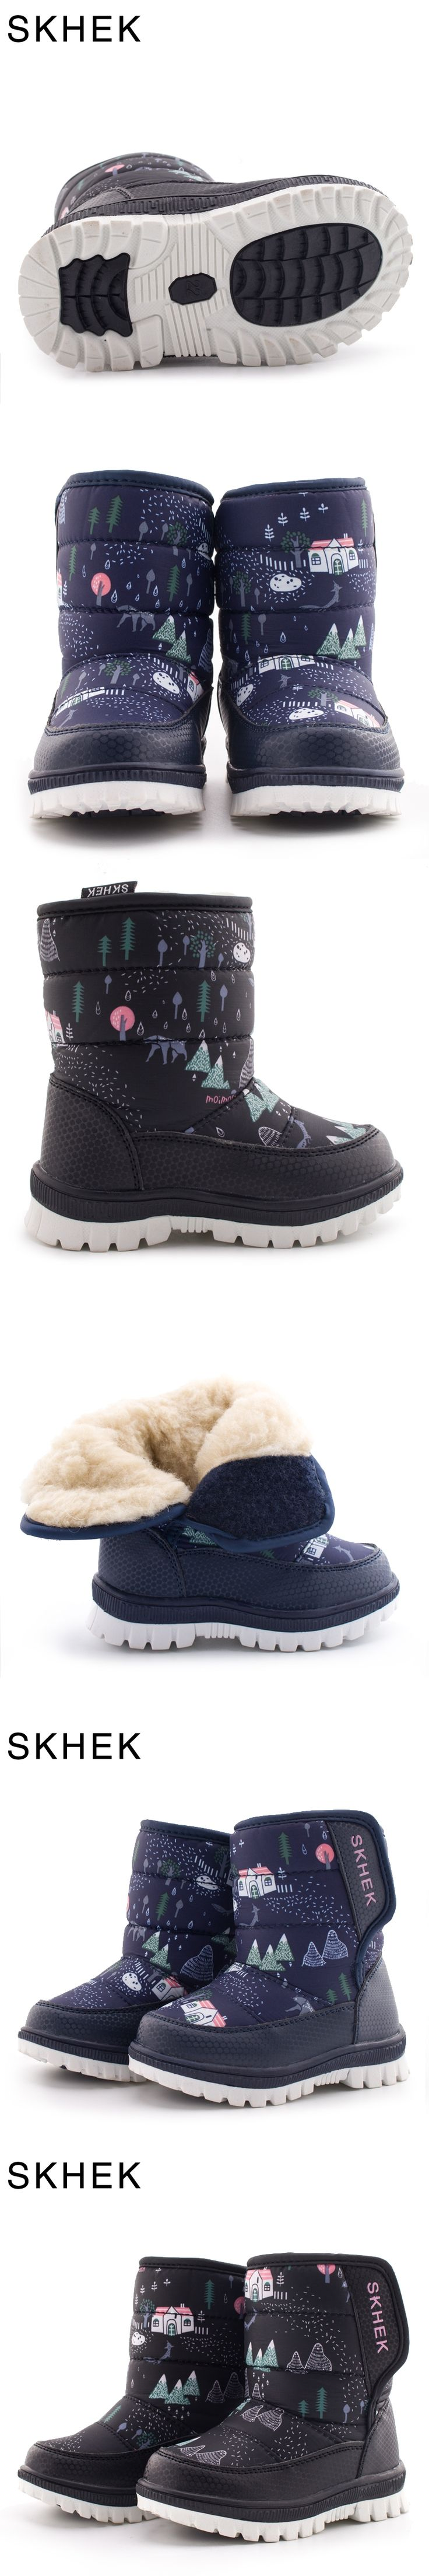 SKHEK Winter Children Round Toe Snow Boots For Girls Boys Flat With Ankle Kids Rubber Boots Unisex Cotton Fabric Shoes